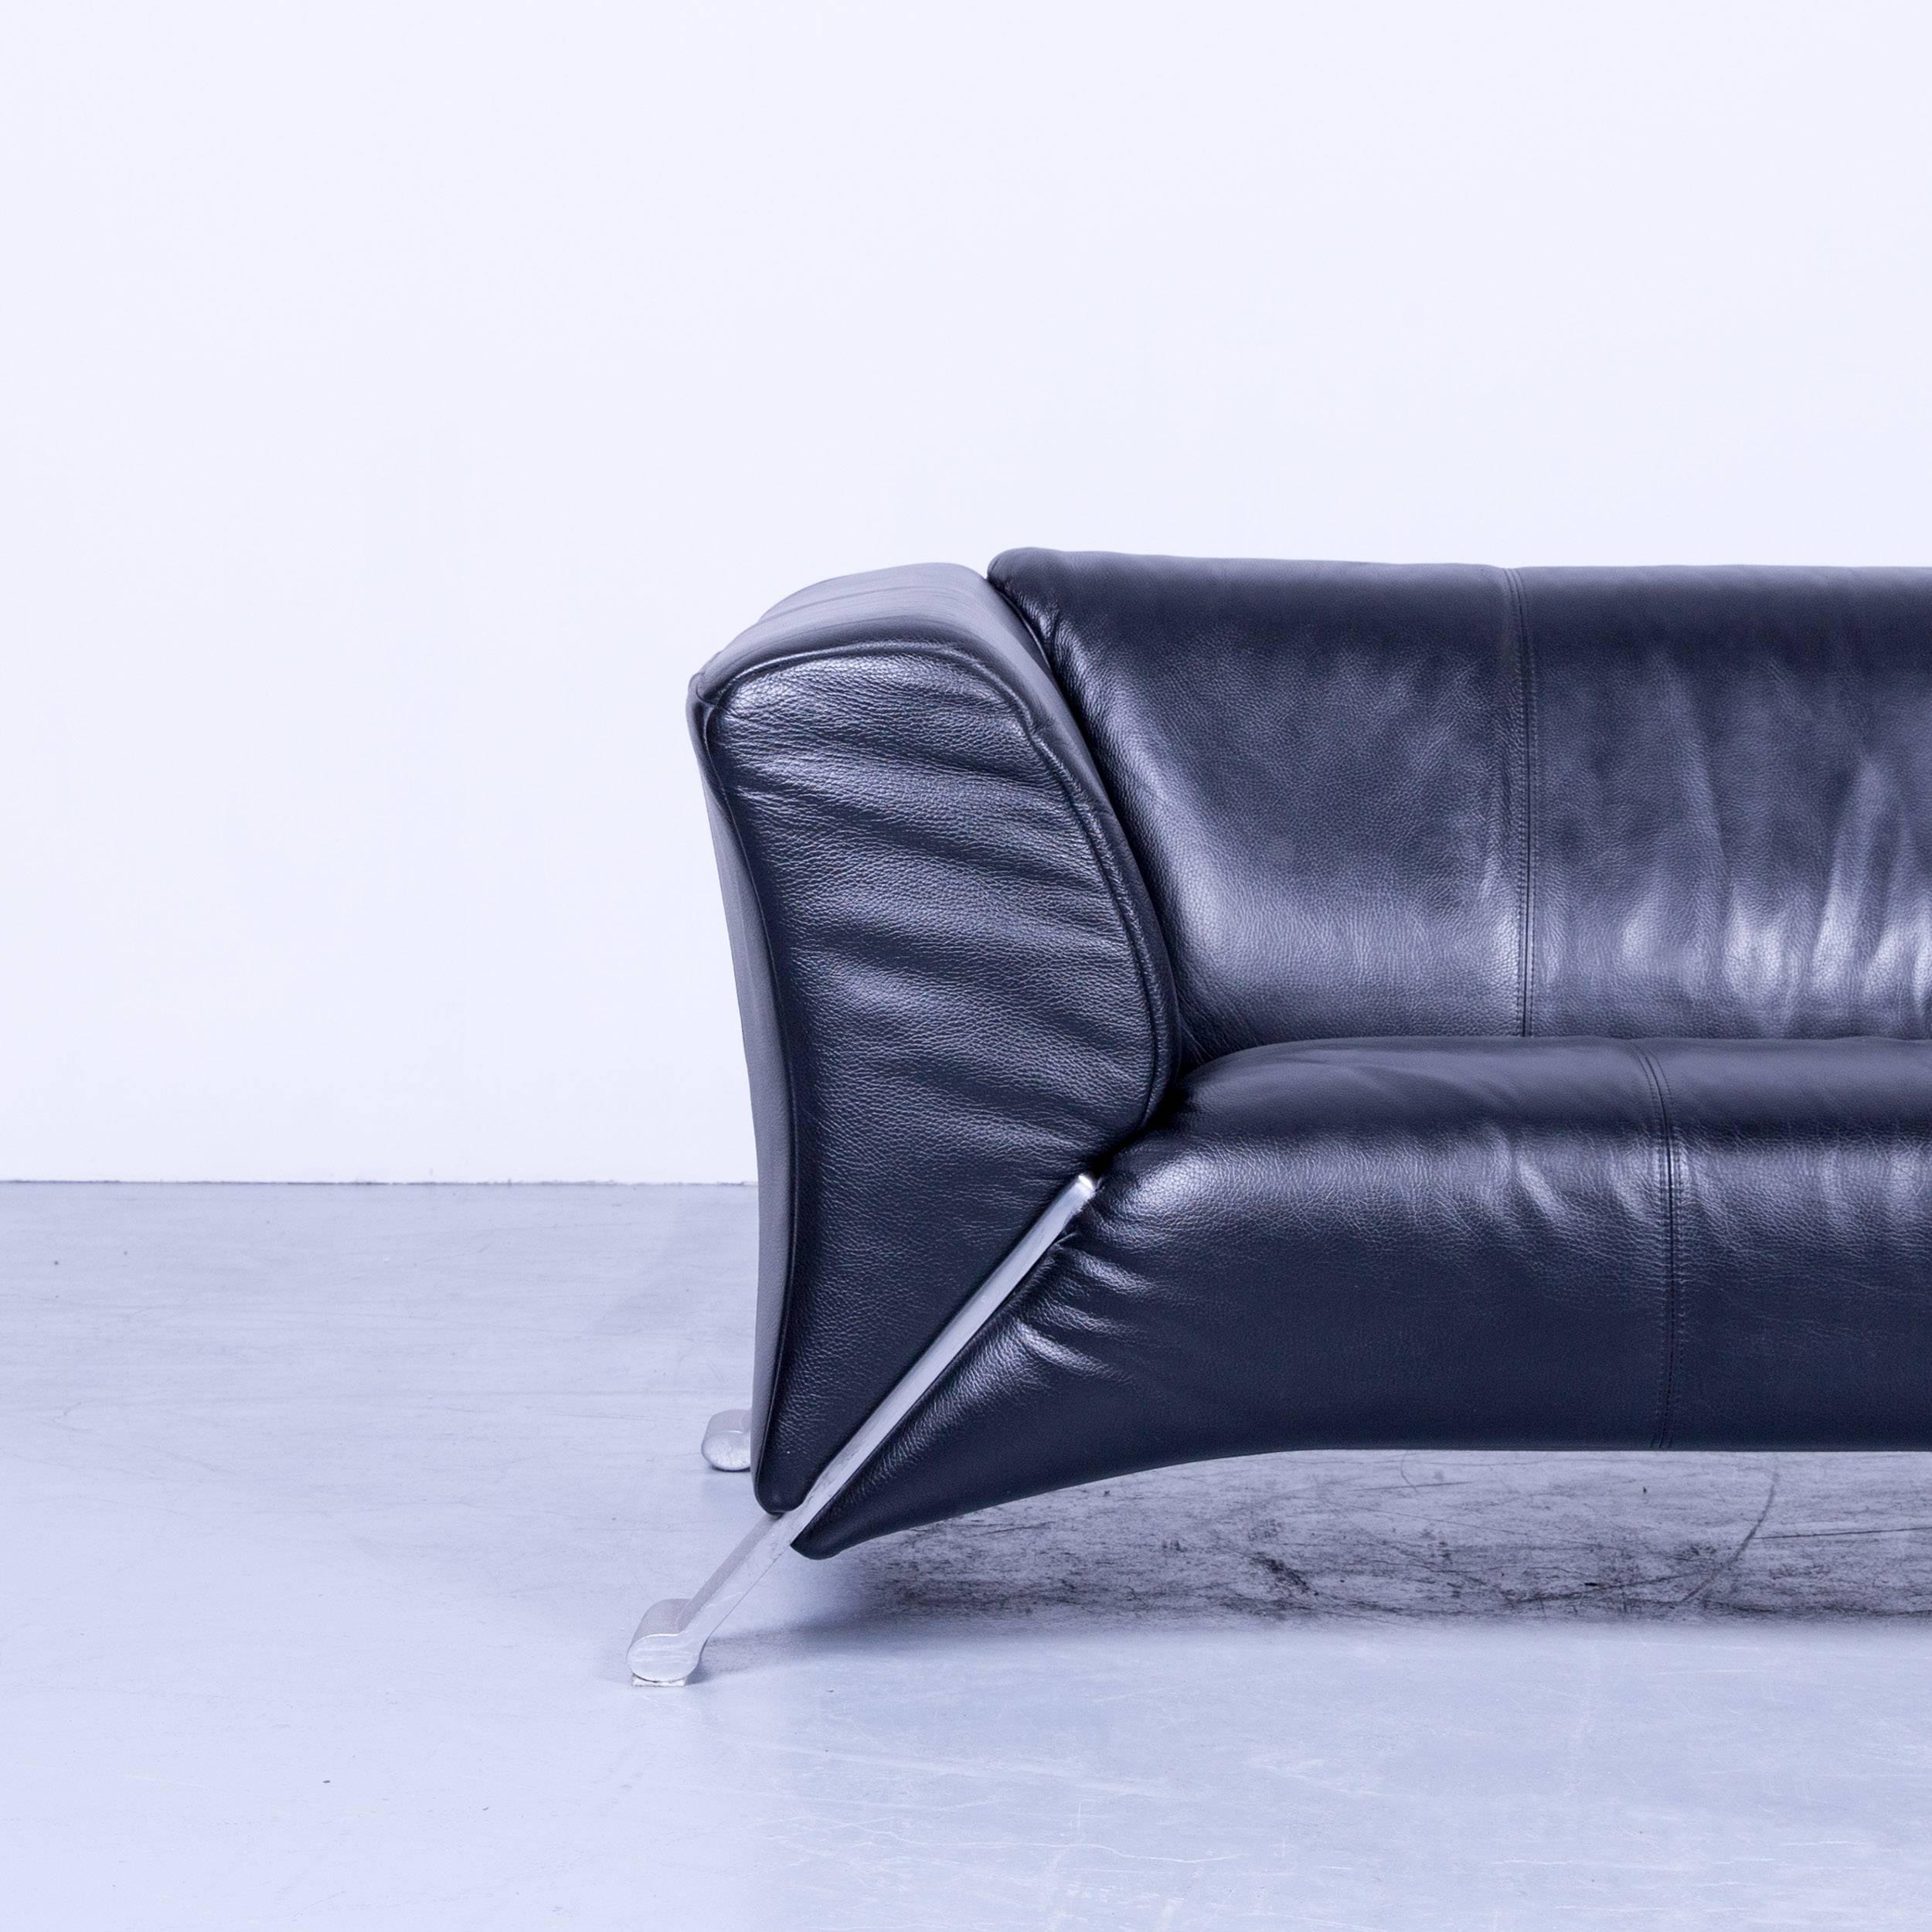 Rolf Benz 322 Sessel Set Of Two Rolf Benz 322 Designer Sofa Black Three And Two Seat Leather Couch